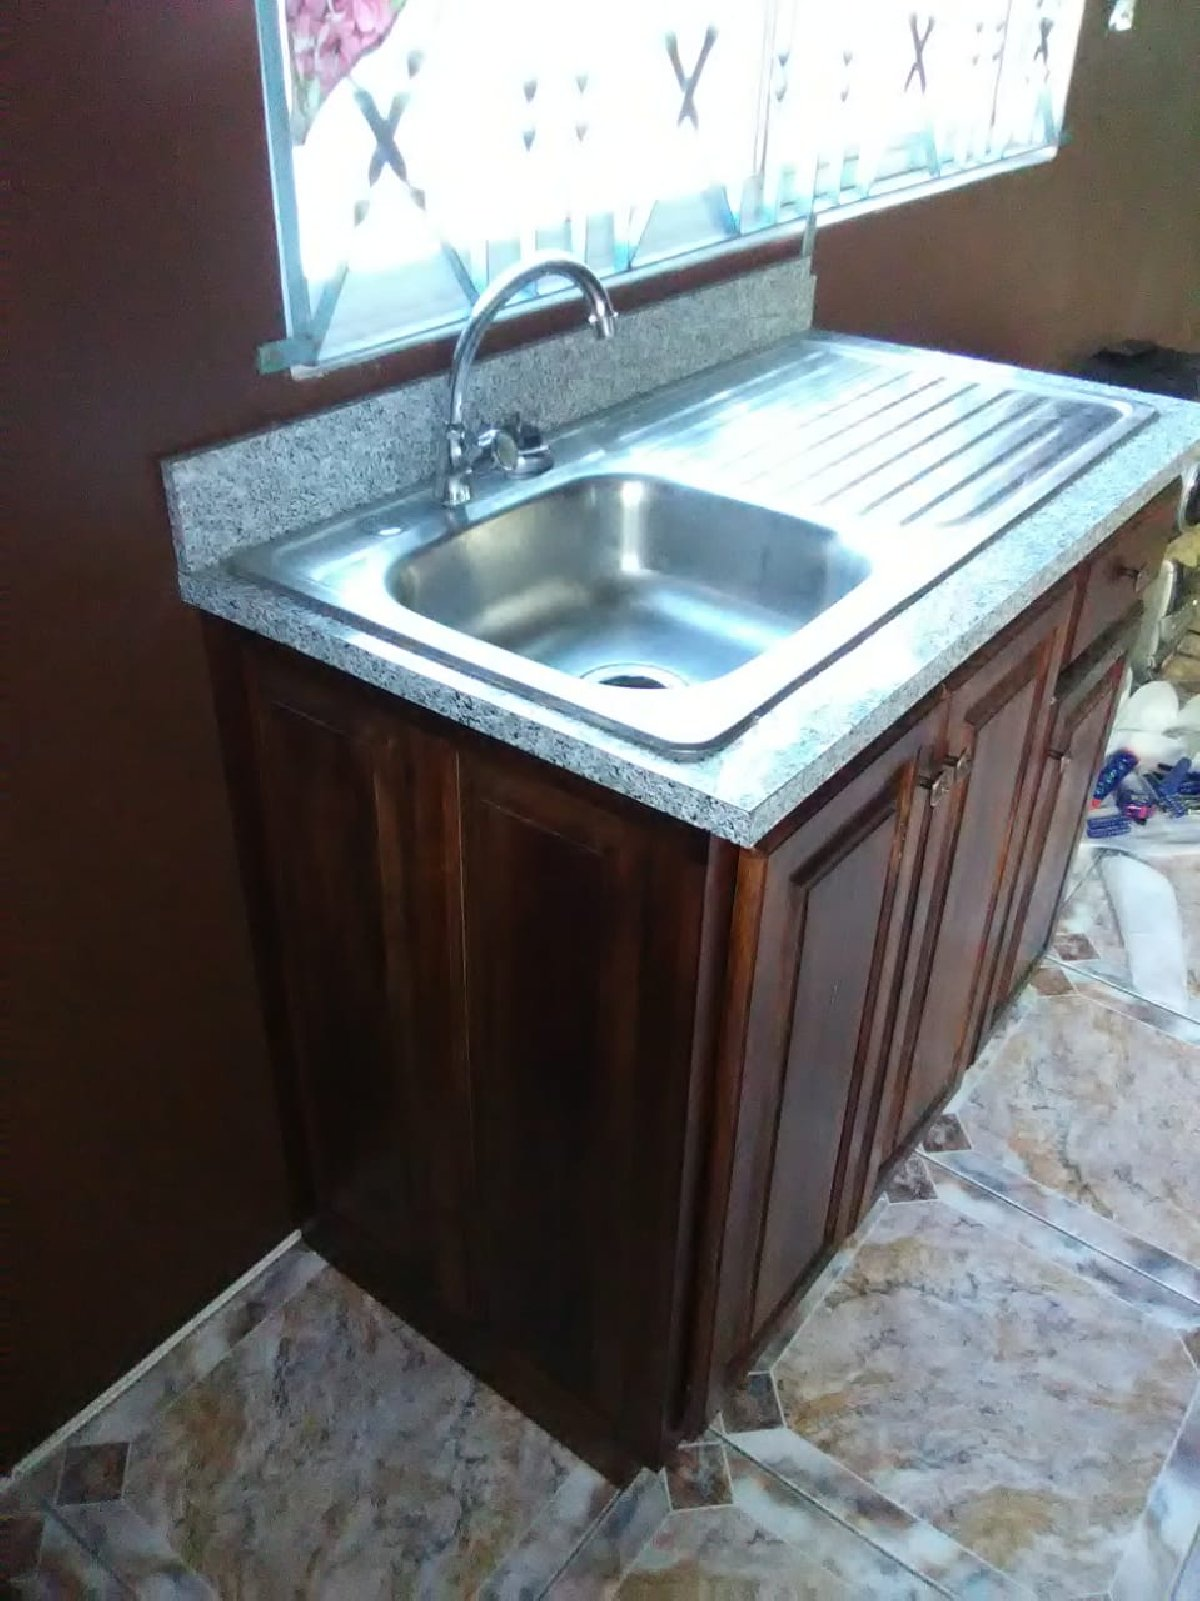 Ready Made Cedar Wood Kitchen Cupboard With Sink For Sale In Portmore St Catherine Furniture